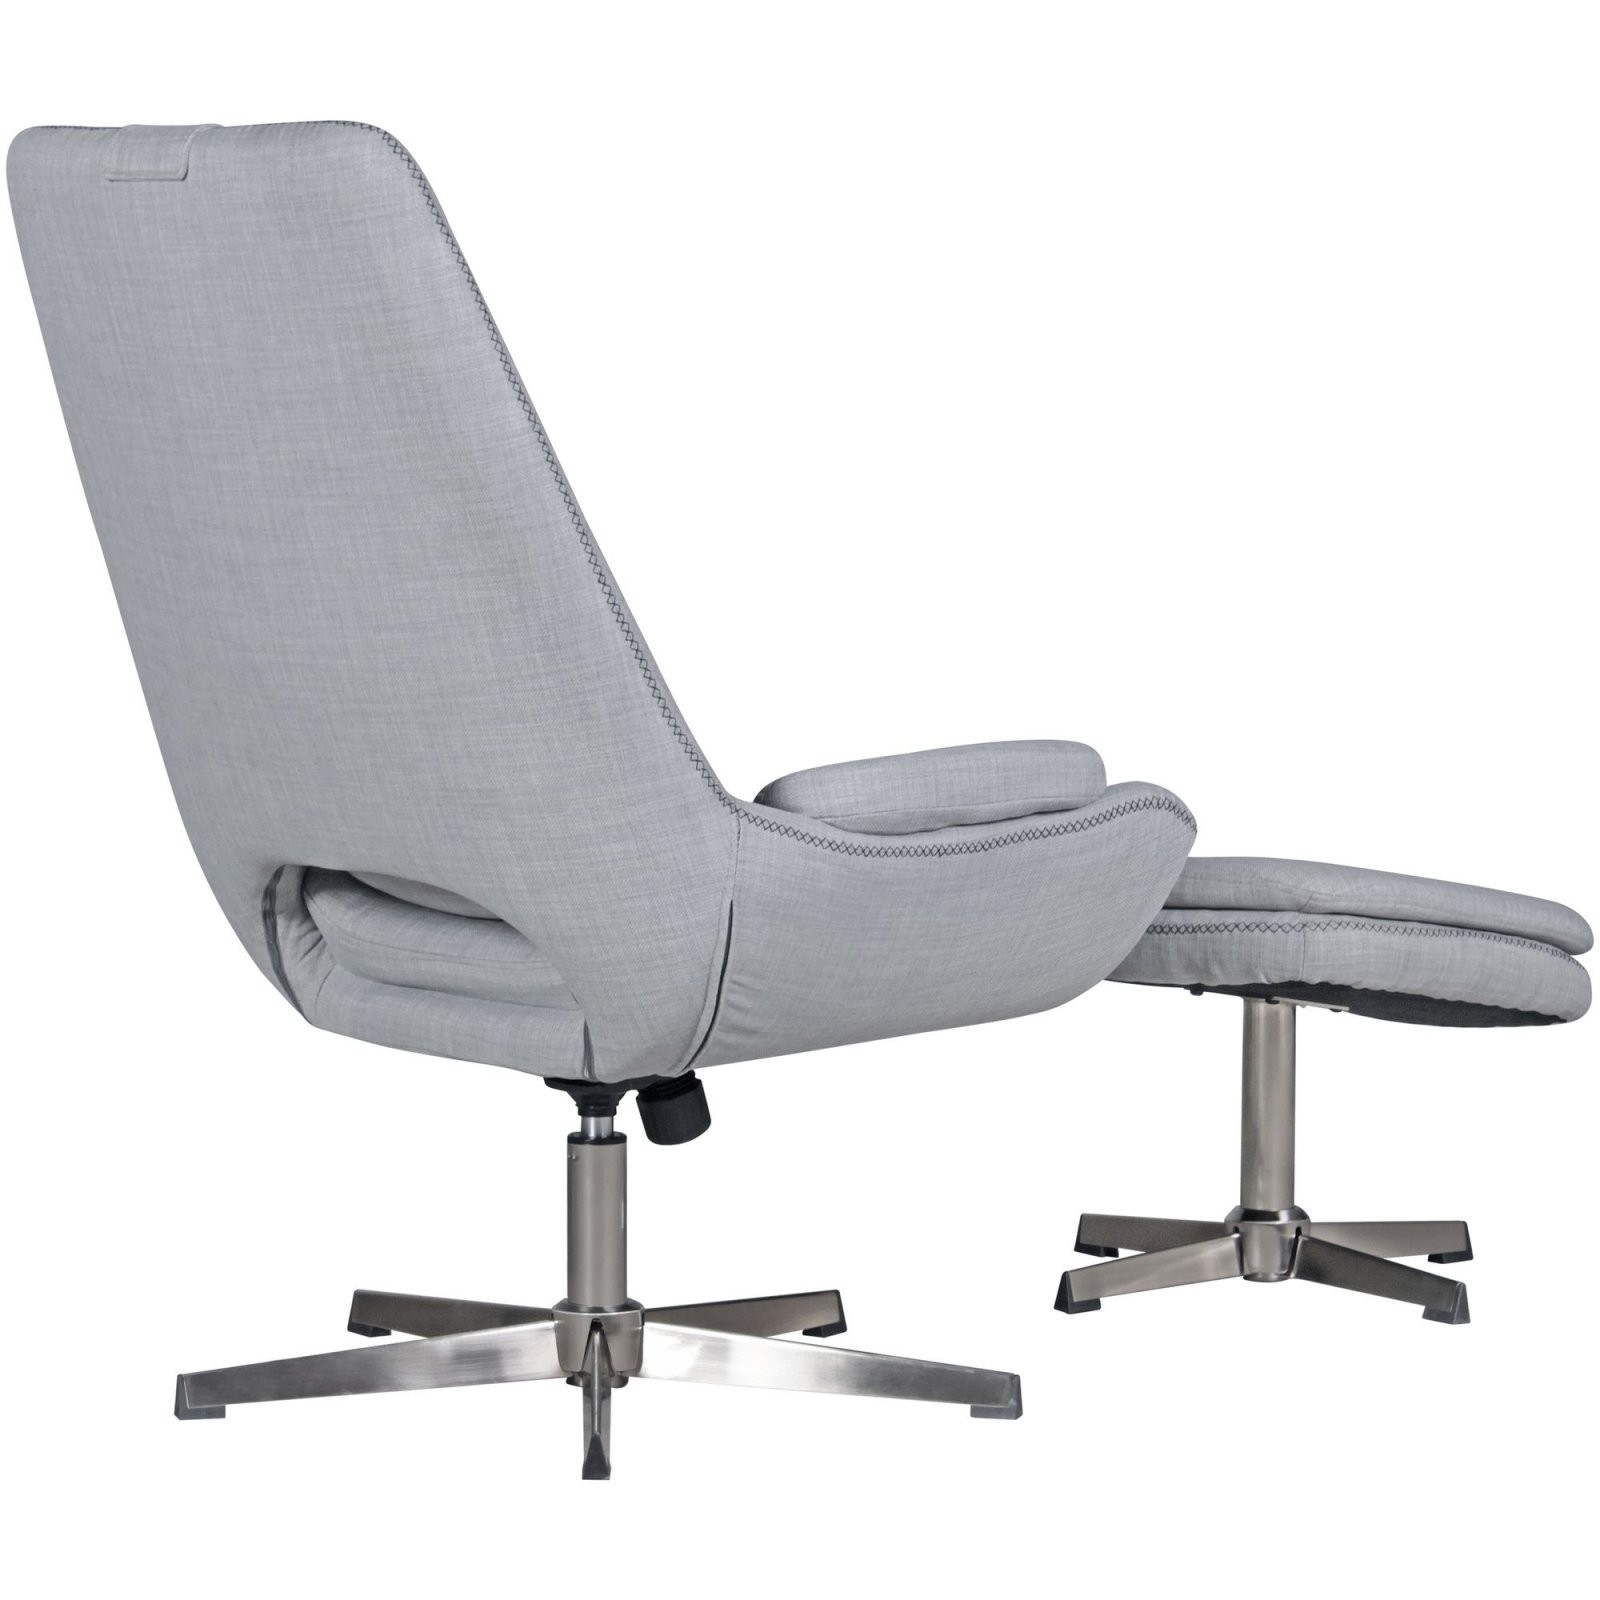 Lesesessel Mit Hocker X8D1 Sessel Hocker Gã Nstig Online Moebel von Relaxsessel Mit Hocker Ikea Photo